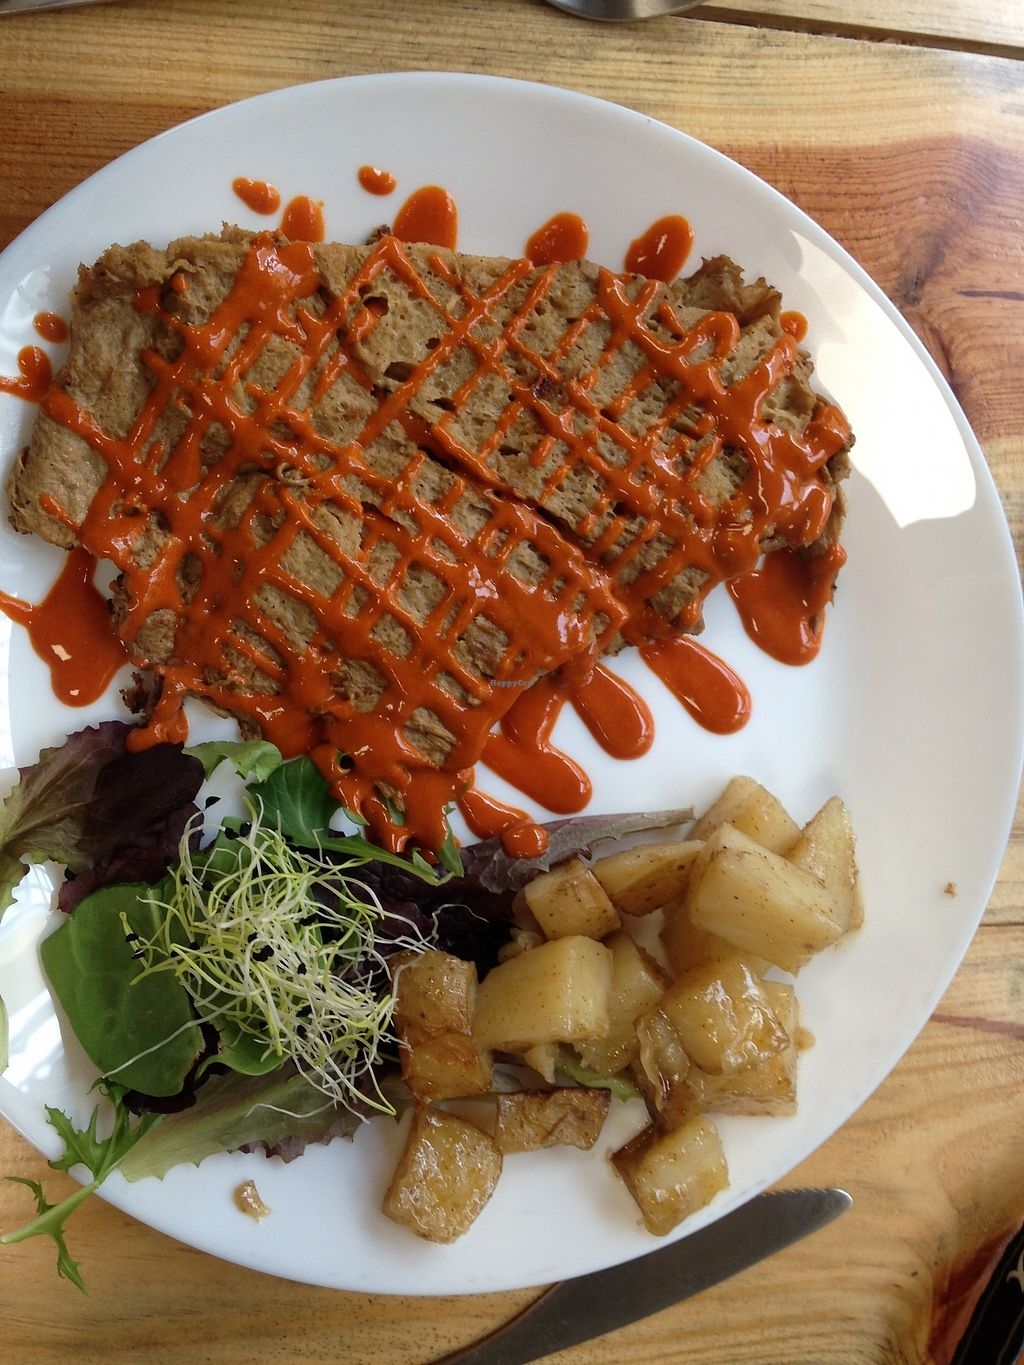 "Photo of Veganitessen  by <a href=""/members/profile/charlot669"">charlot669</a> <br/>Seitan Steak <br/> February 27, 2018  - <a href='/contact/abuse/image/17923/364416'>Report</a>"